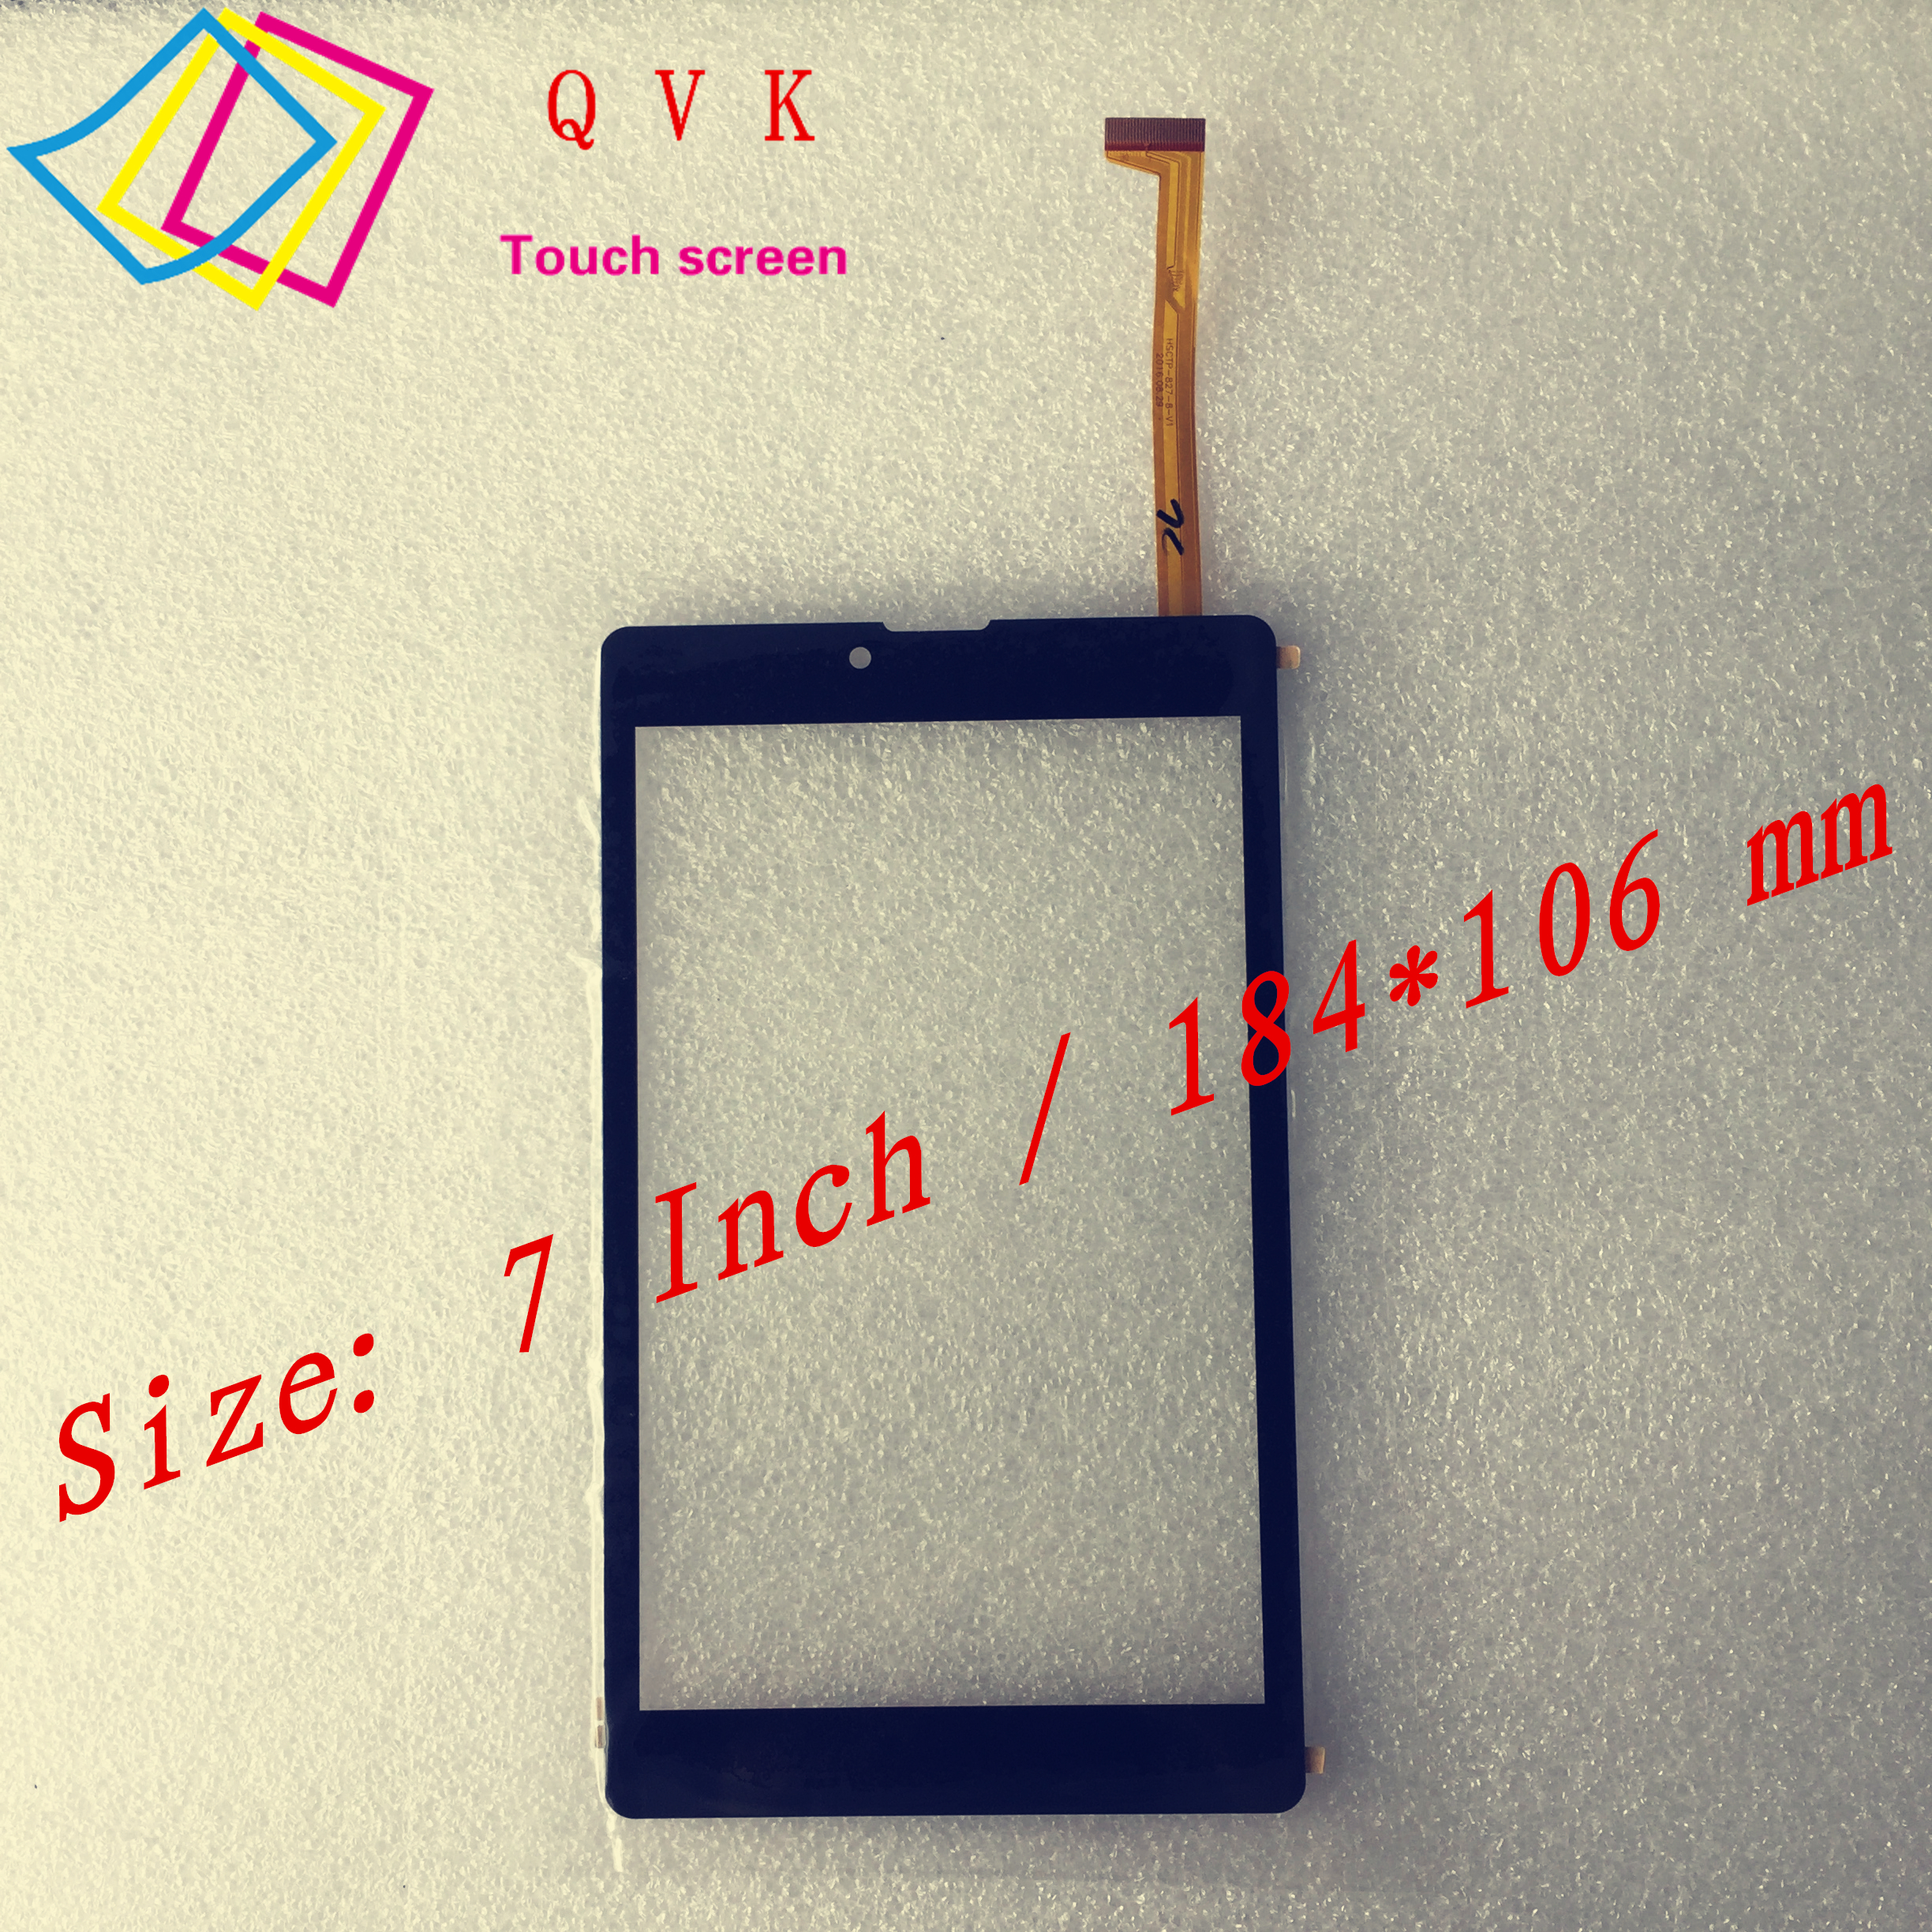 7 Inch P/N HSCTP-827-8-V1 2016.08.29 For DIGMA OPTIMA 7306S 4G TS7089PL tablet pc capacitive touch screen glass digitizer panel for hsctp 852b 8 v0 tablet capacitive touch screen 8 inch pc touch panel digitizer glass mid sensor free shipping